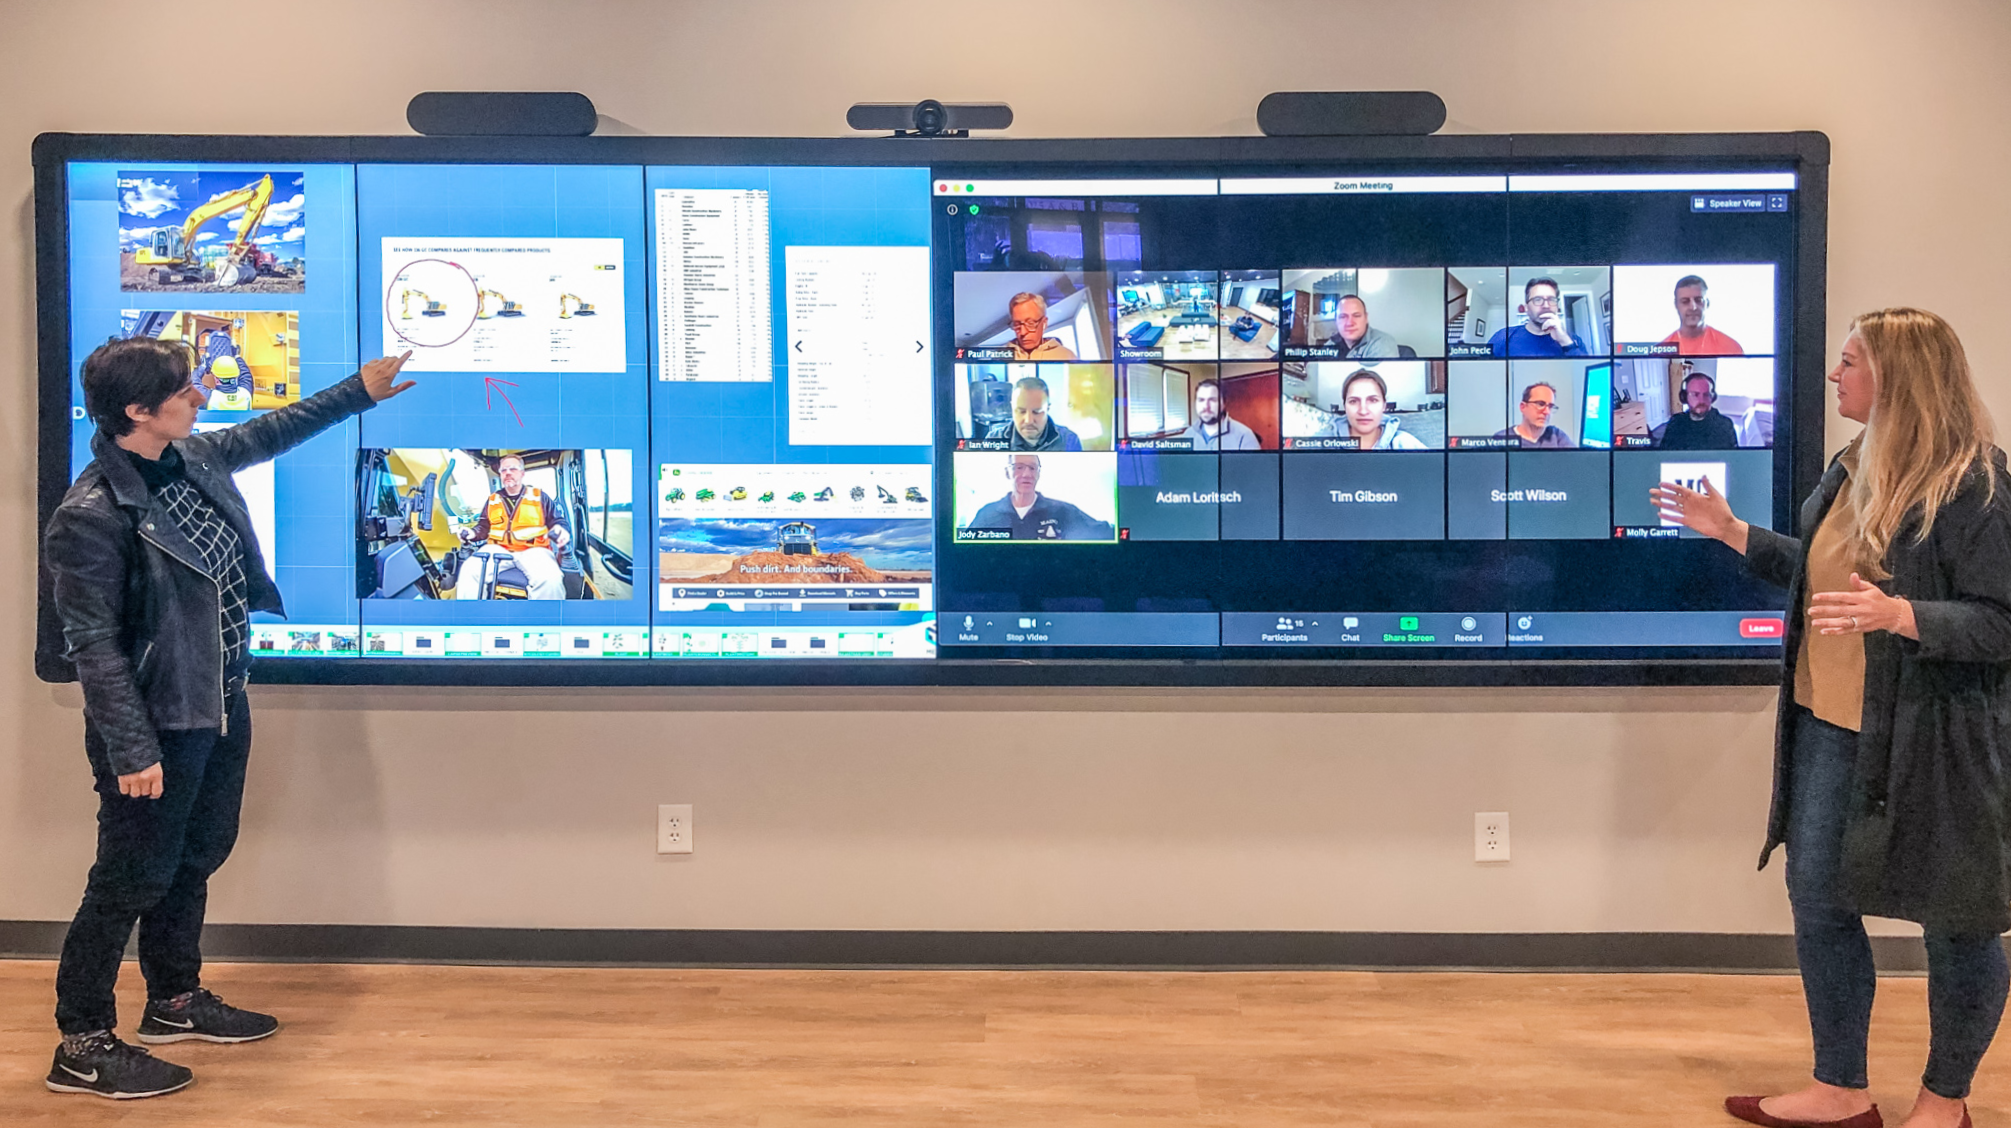 T1V-ThinkHub-Virtual-Selling-Video-Conferencing-Meeting-Visual-Content-Collaboration-MultiPanel